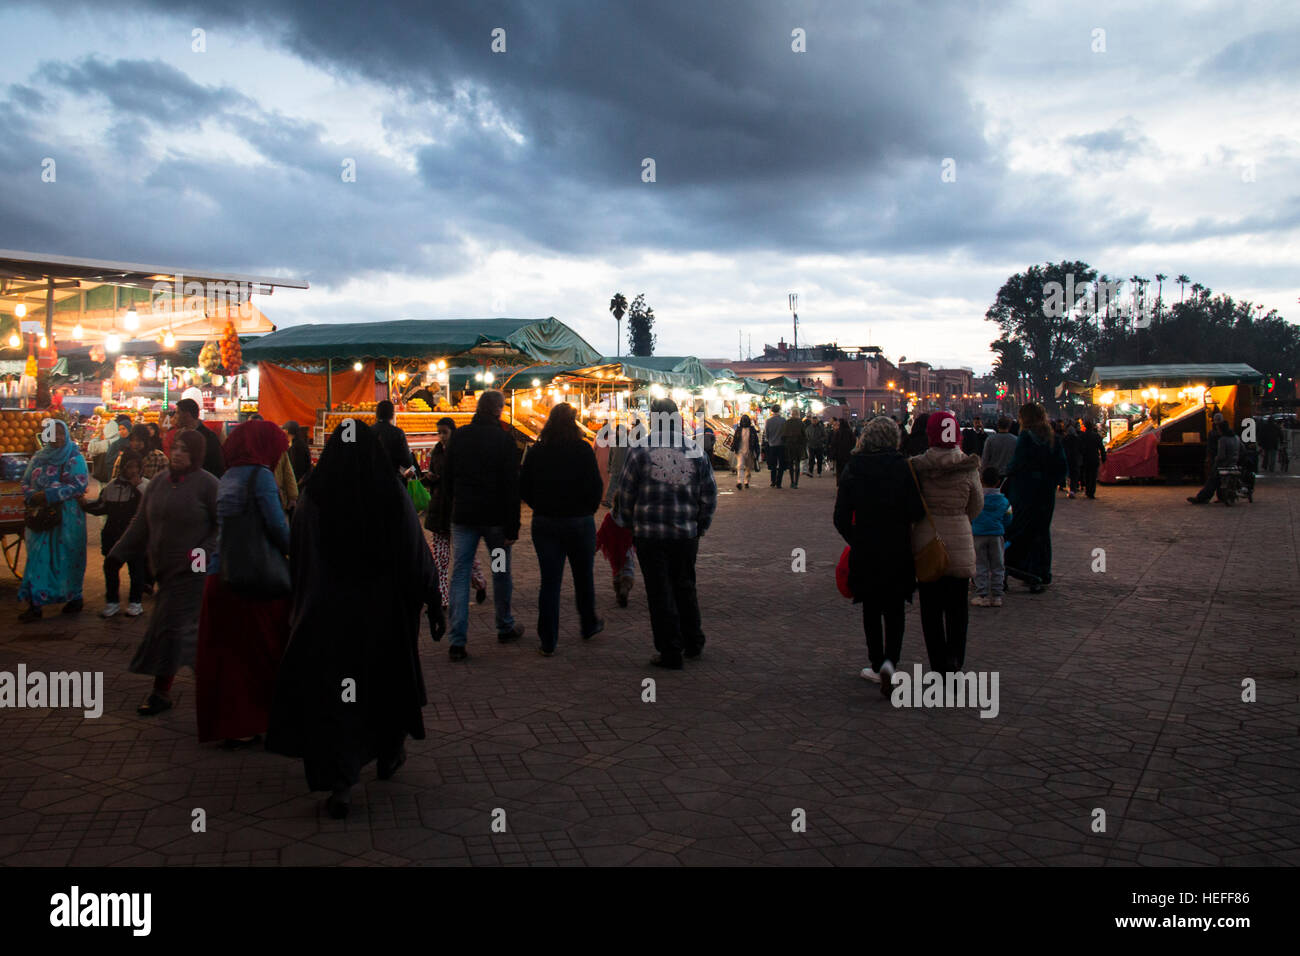 MARRAKESH, MOROCCO - DECEMBER 2016: People during the evening on the very busy main square of Marrakesh in Morocco Stock Photo